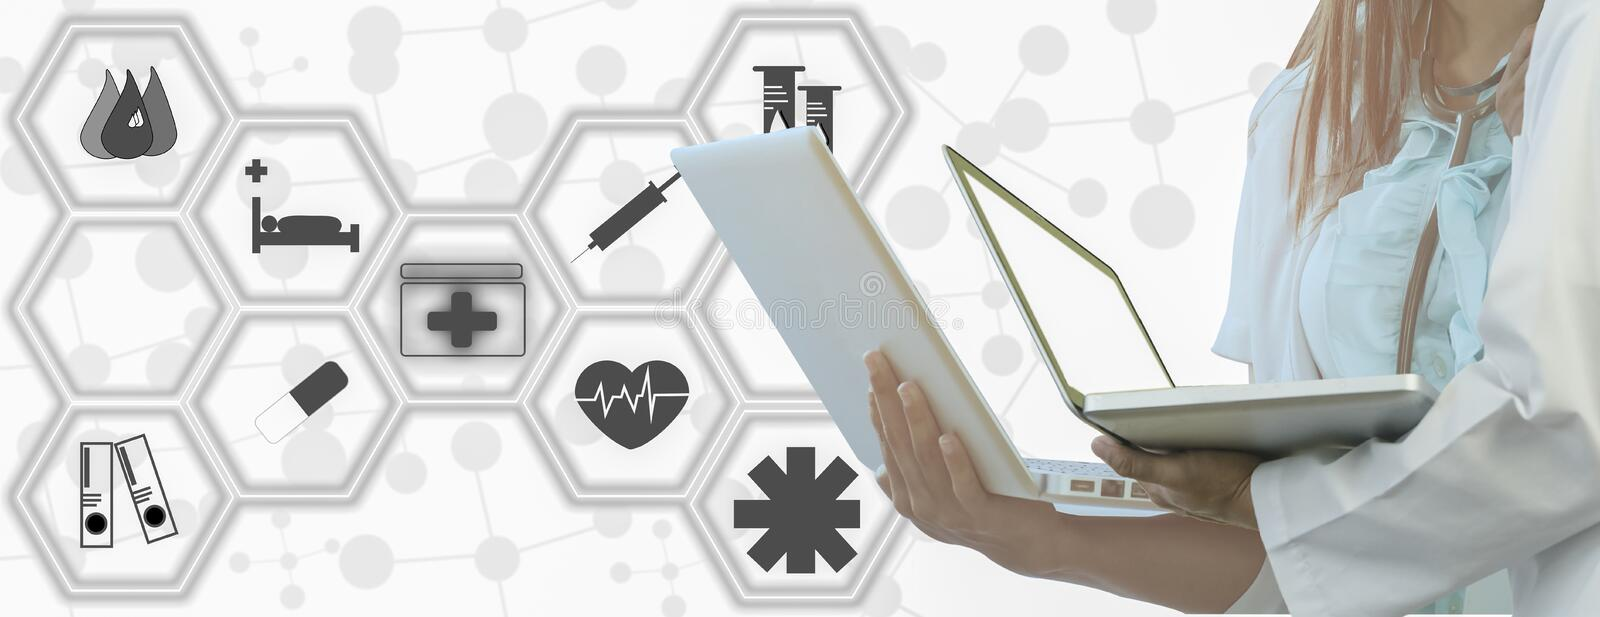 Doctor holds laptop in hand,medical icons white background,for Web banner horizontal panoramic style,Concepts network medical royalty free stock photo